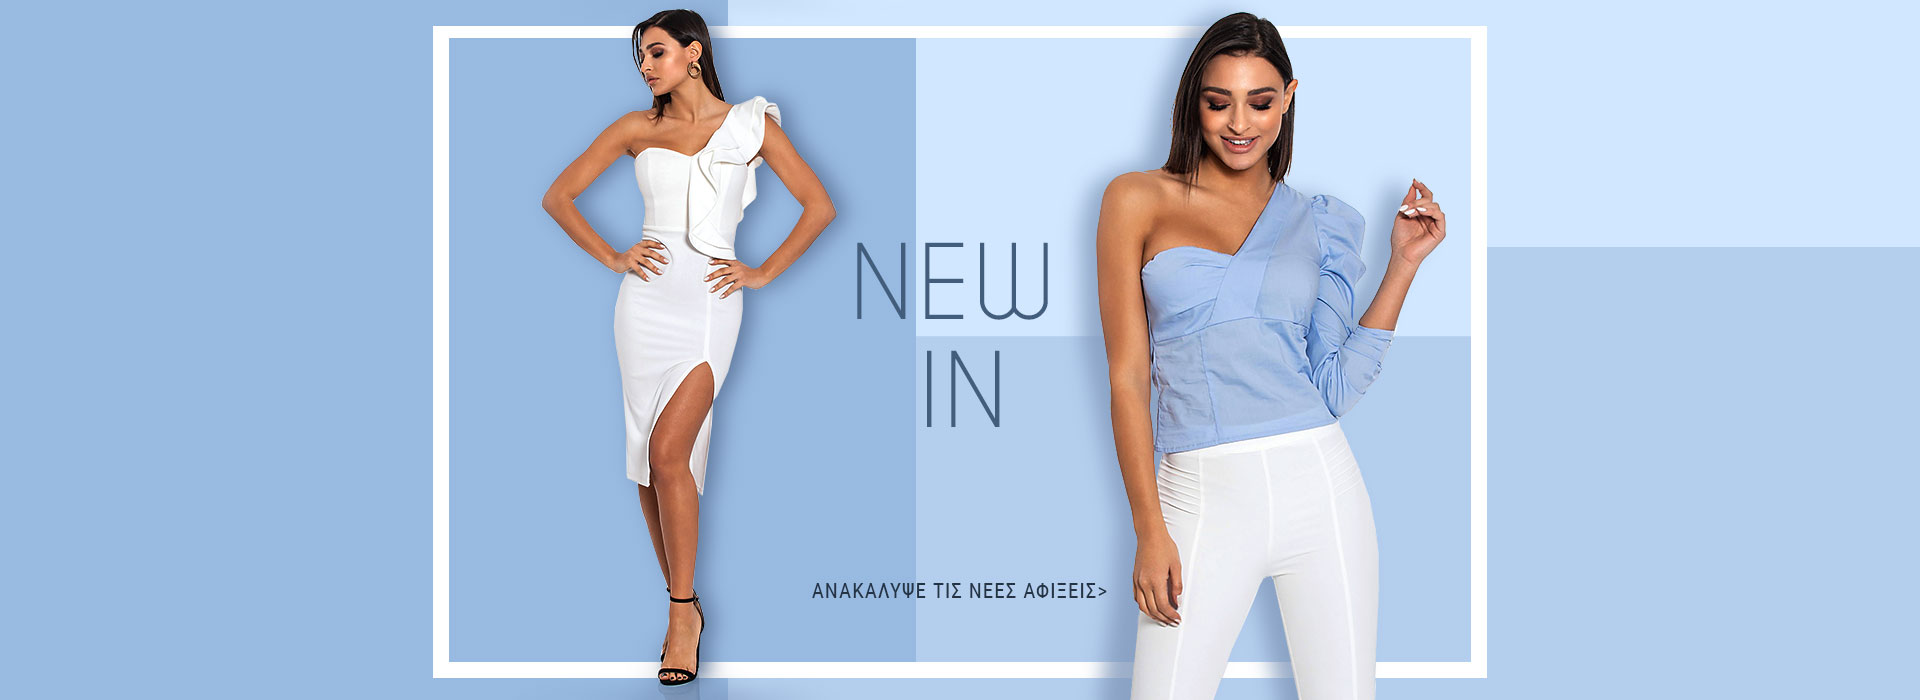 New In - Online Fashion